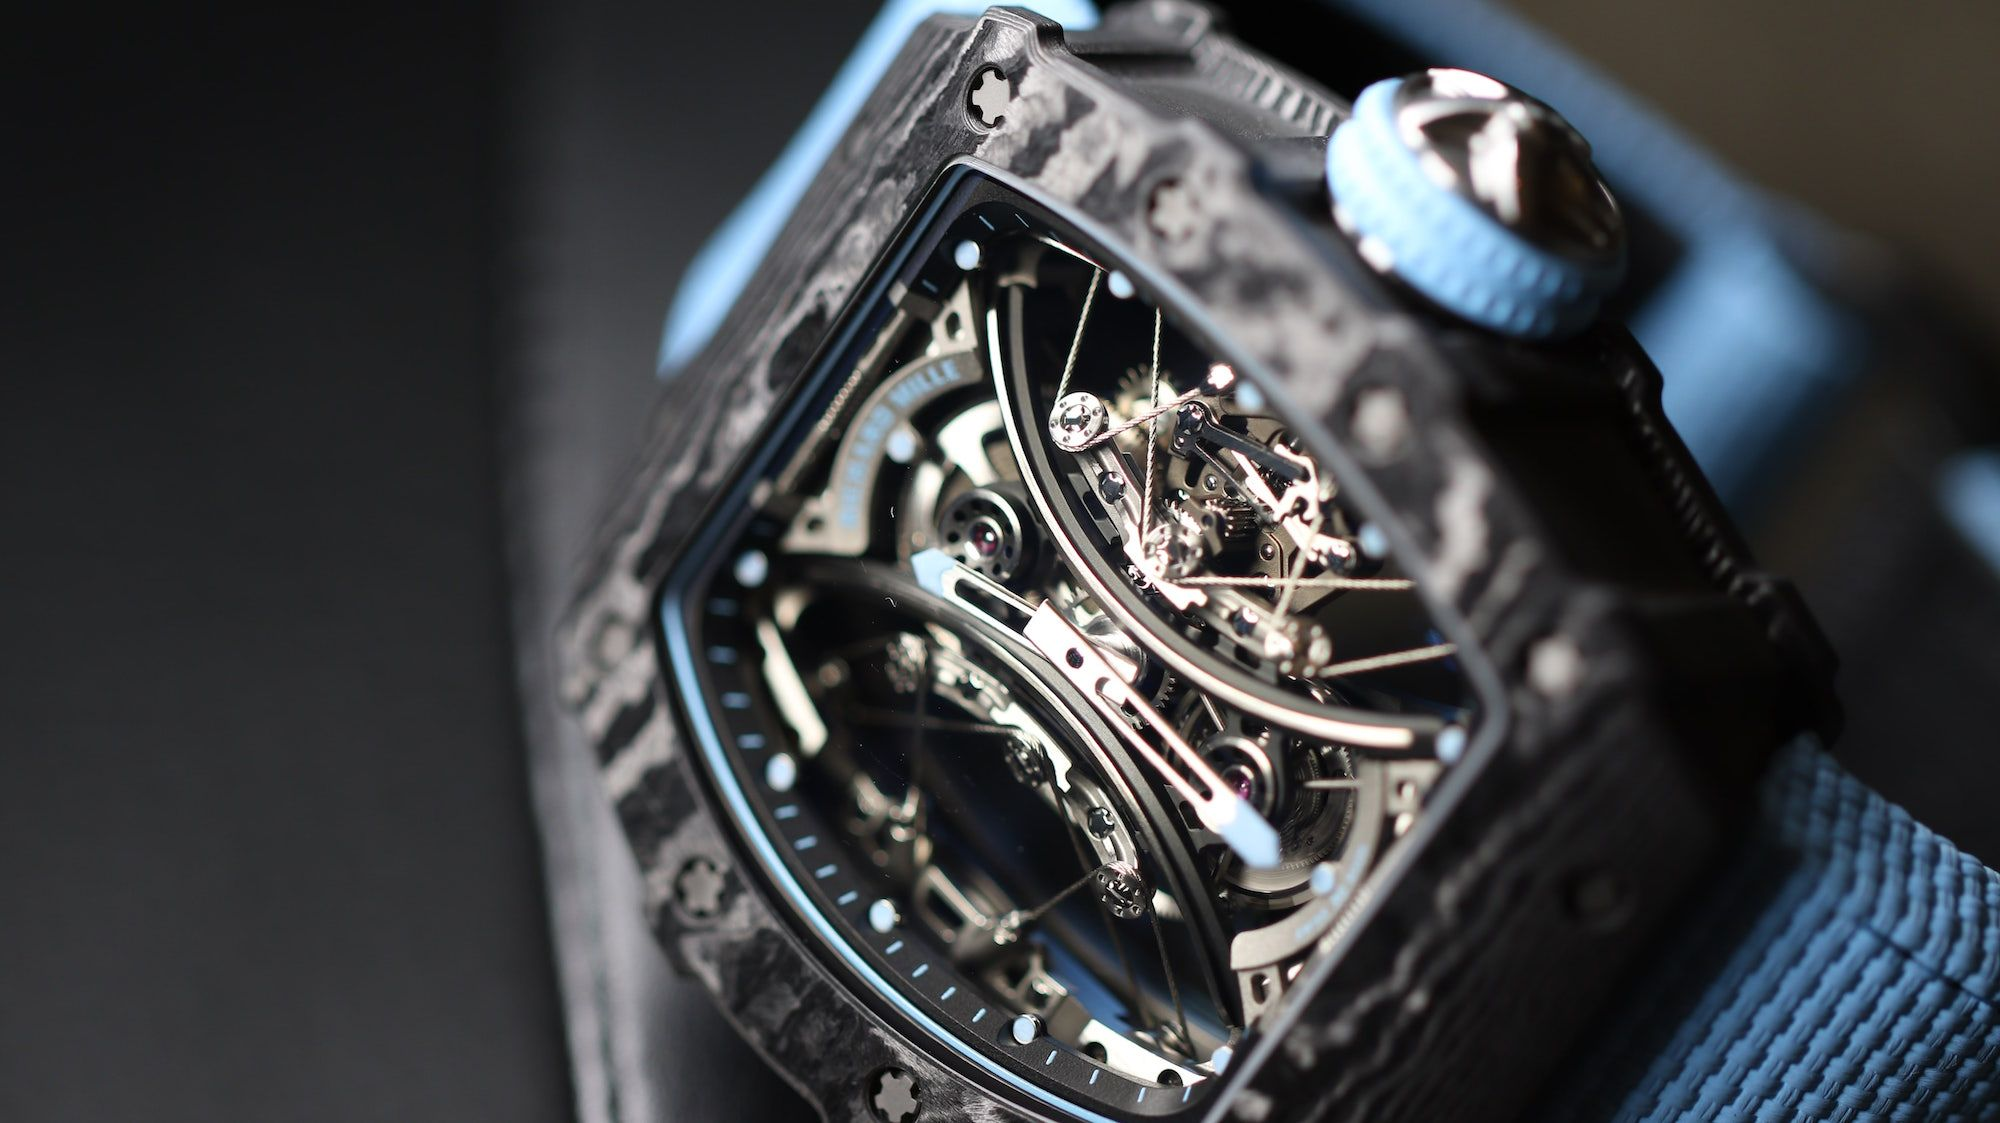 SIHH 2018: Top 3 Watch Highlights From Day 1